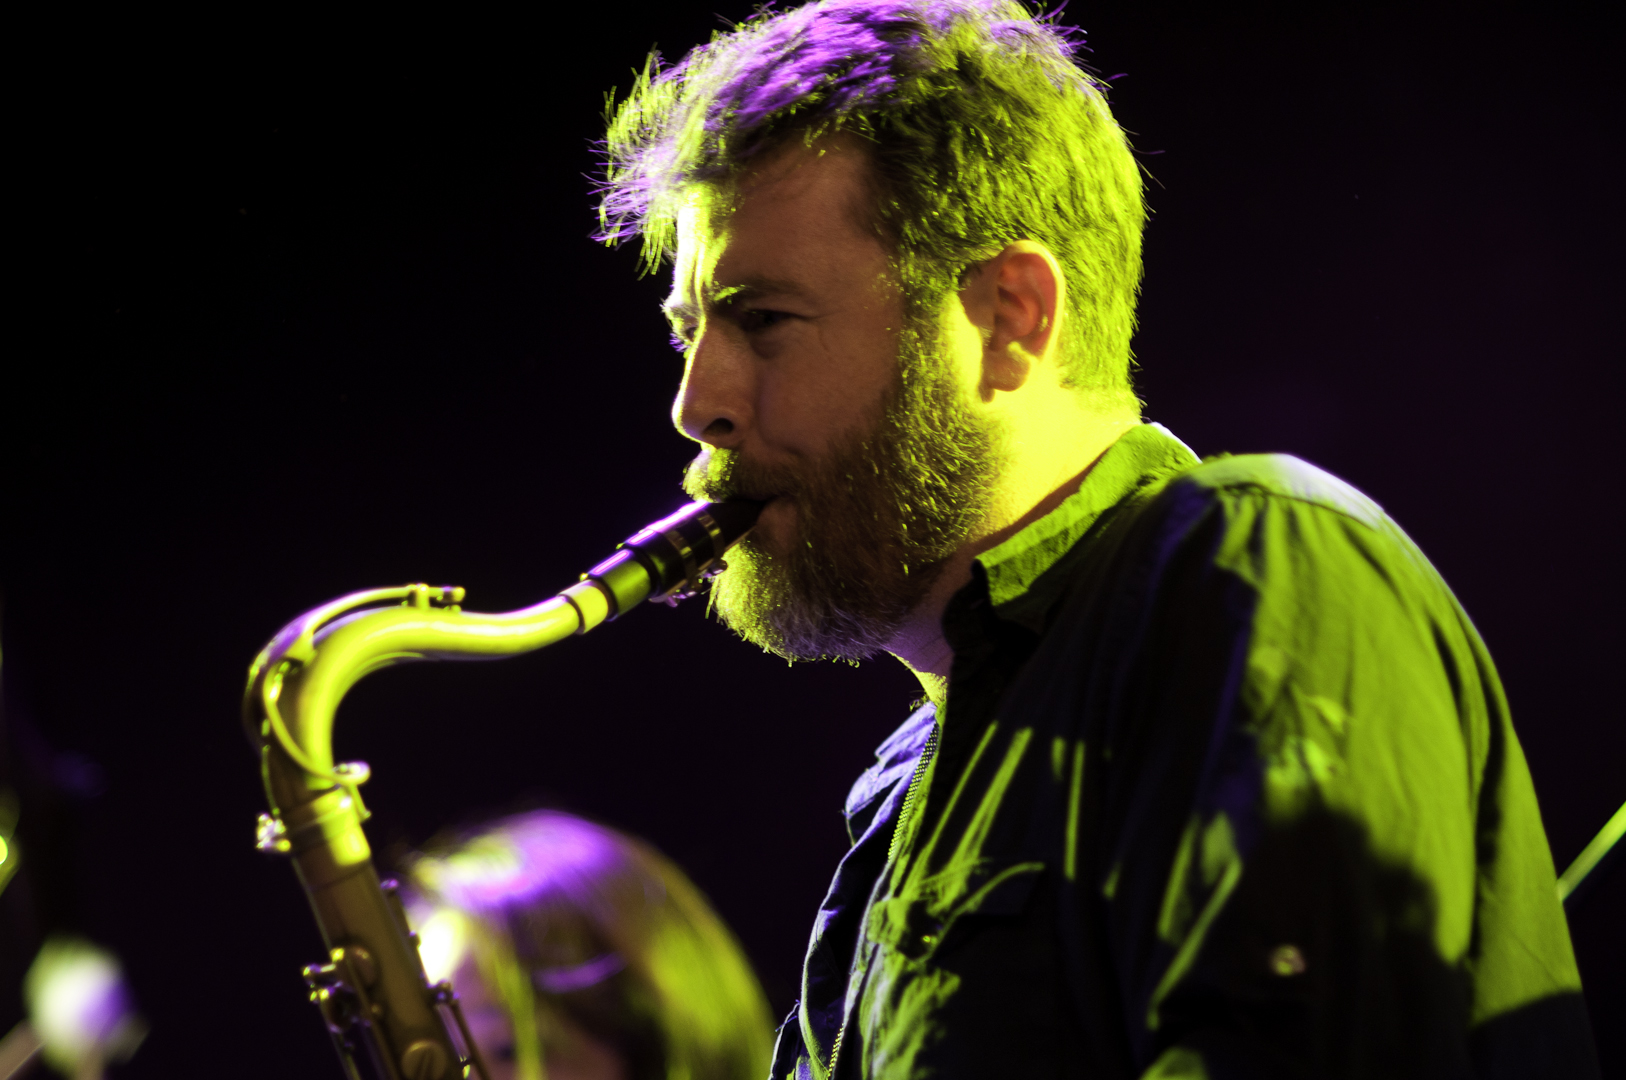 Peter Hess with the Asphalt Orchestra